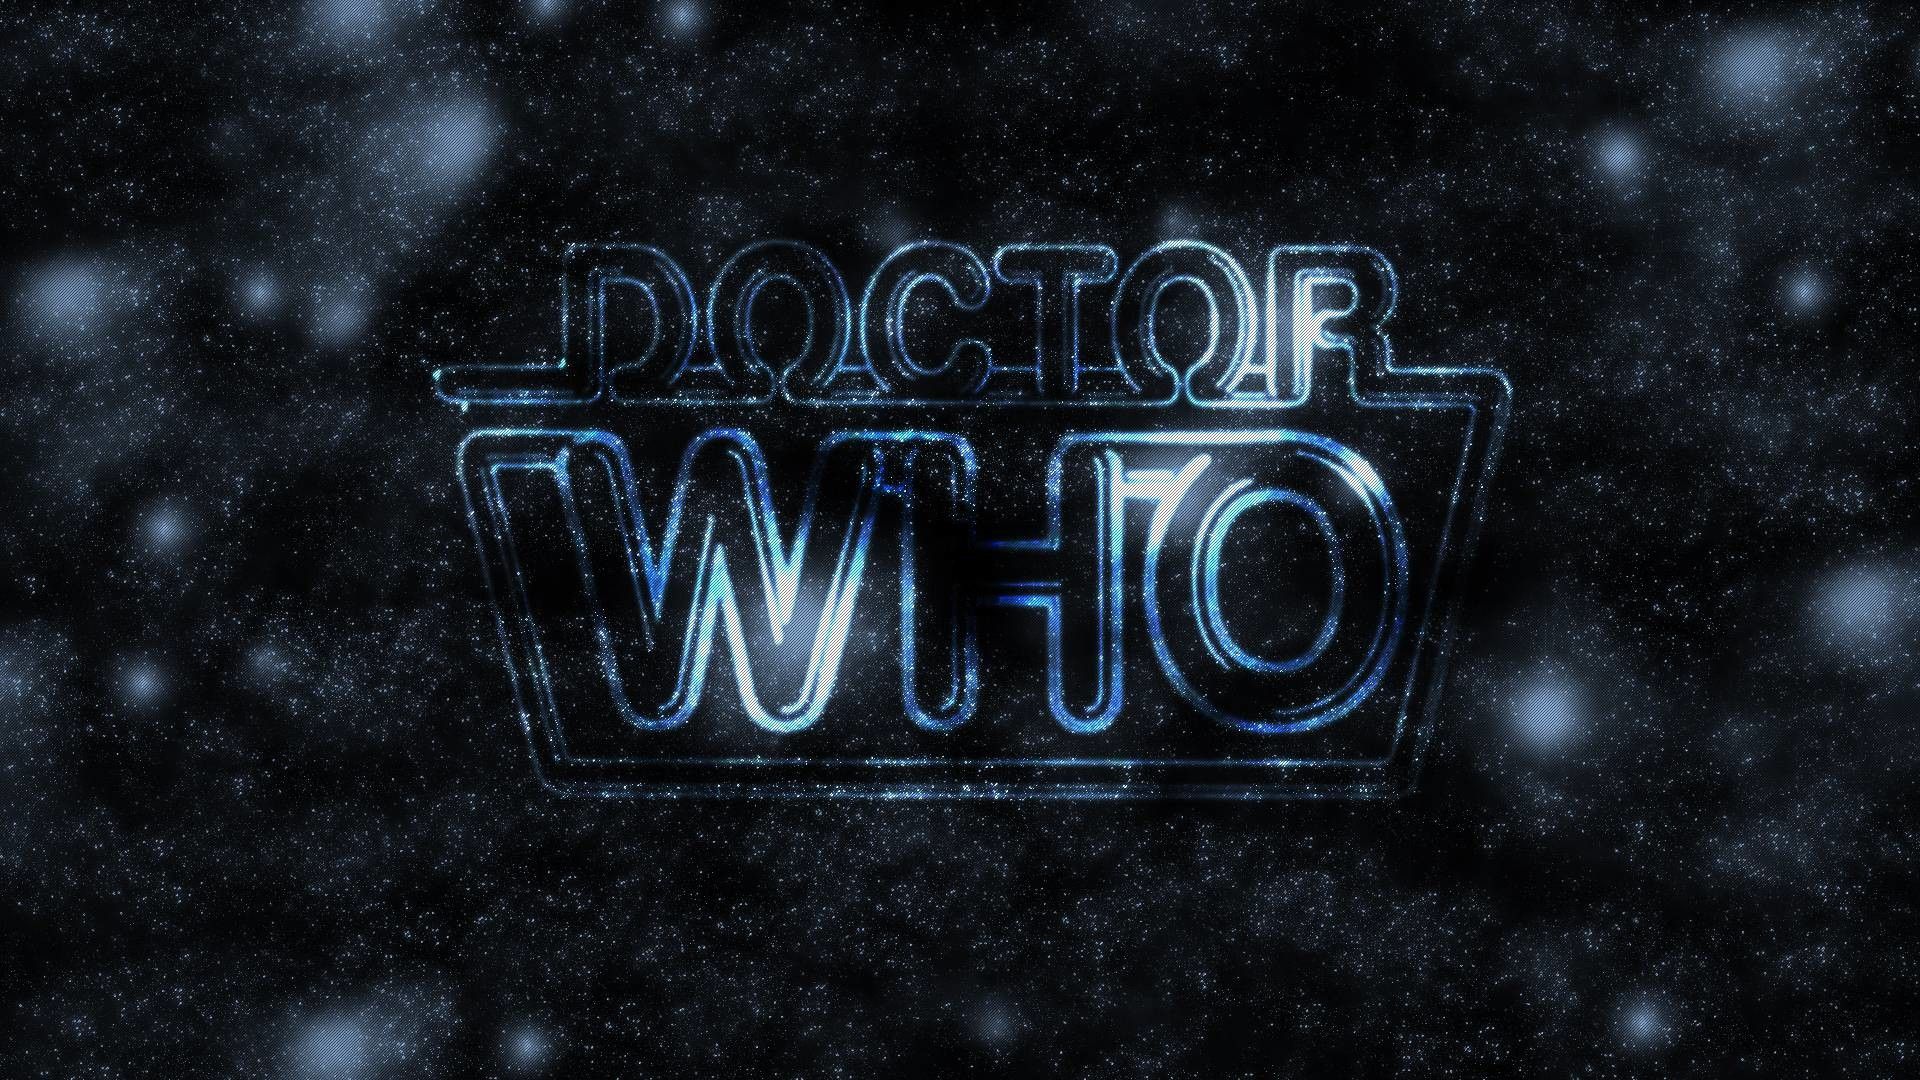 1920x1080 The Doctor In Stars HD Wallpaper